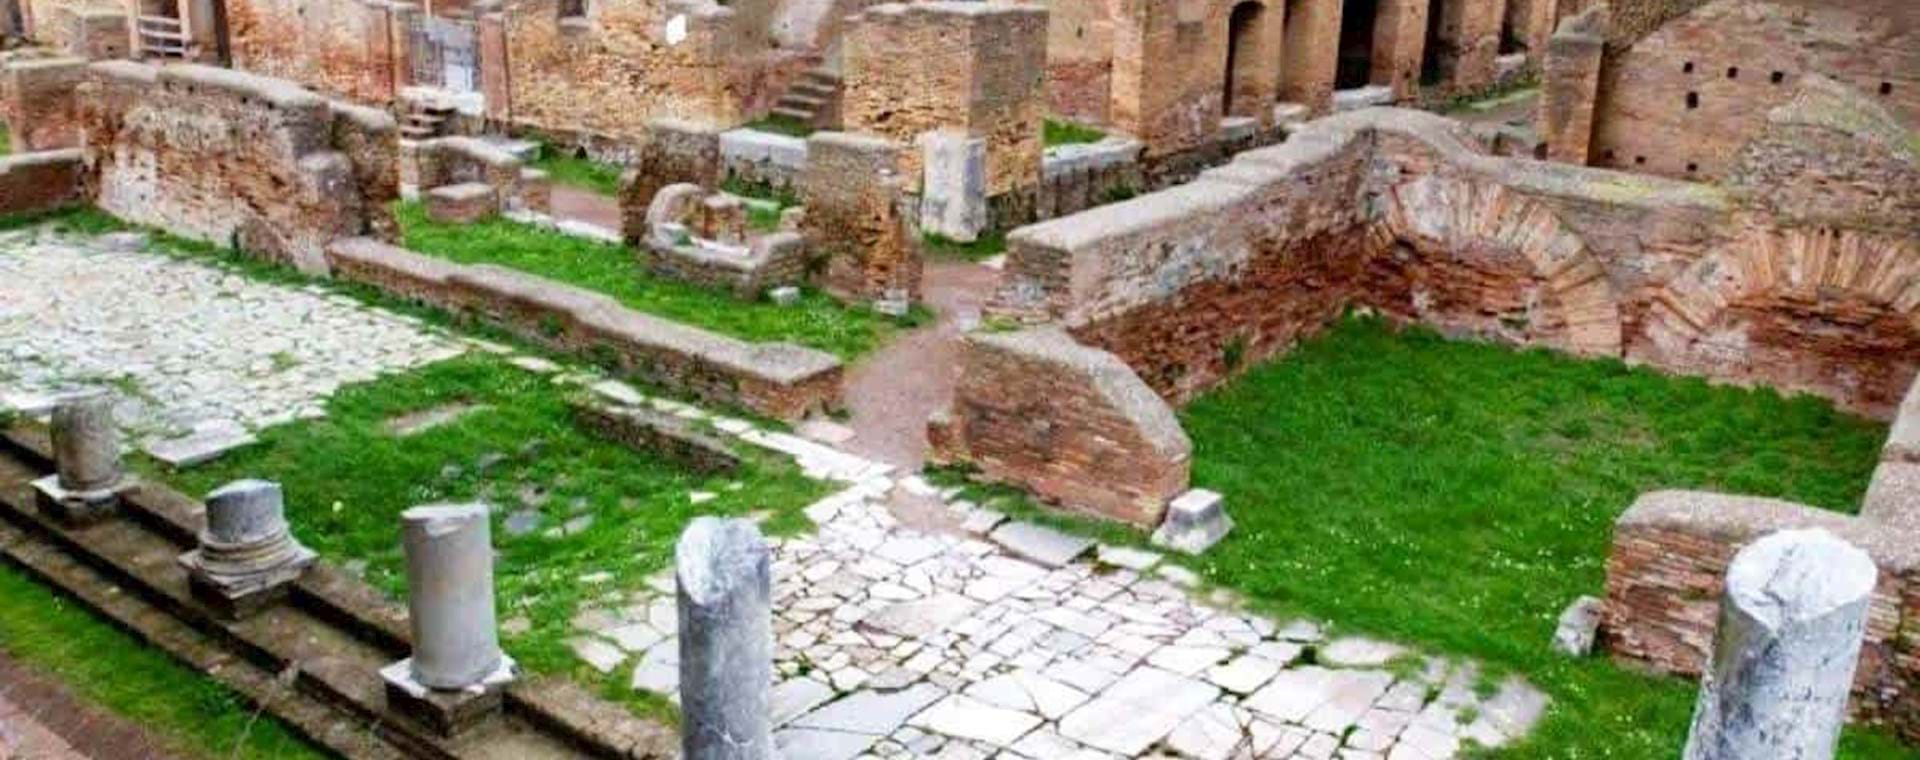 Ruins of Ancient houses in Ostia